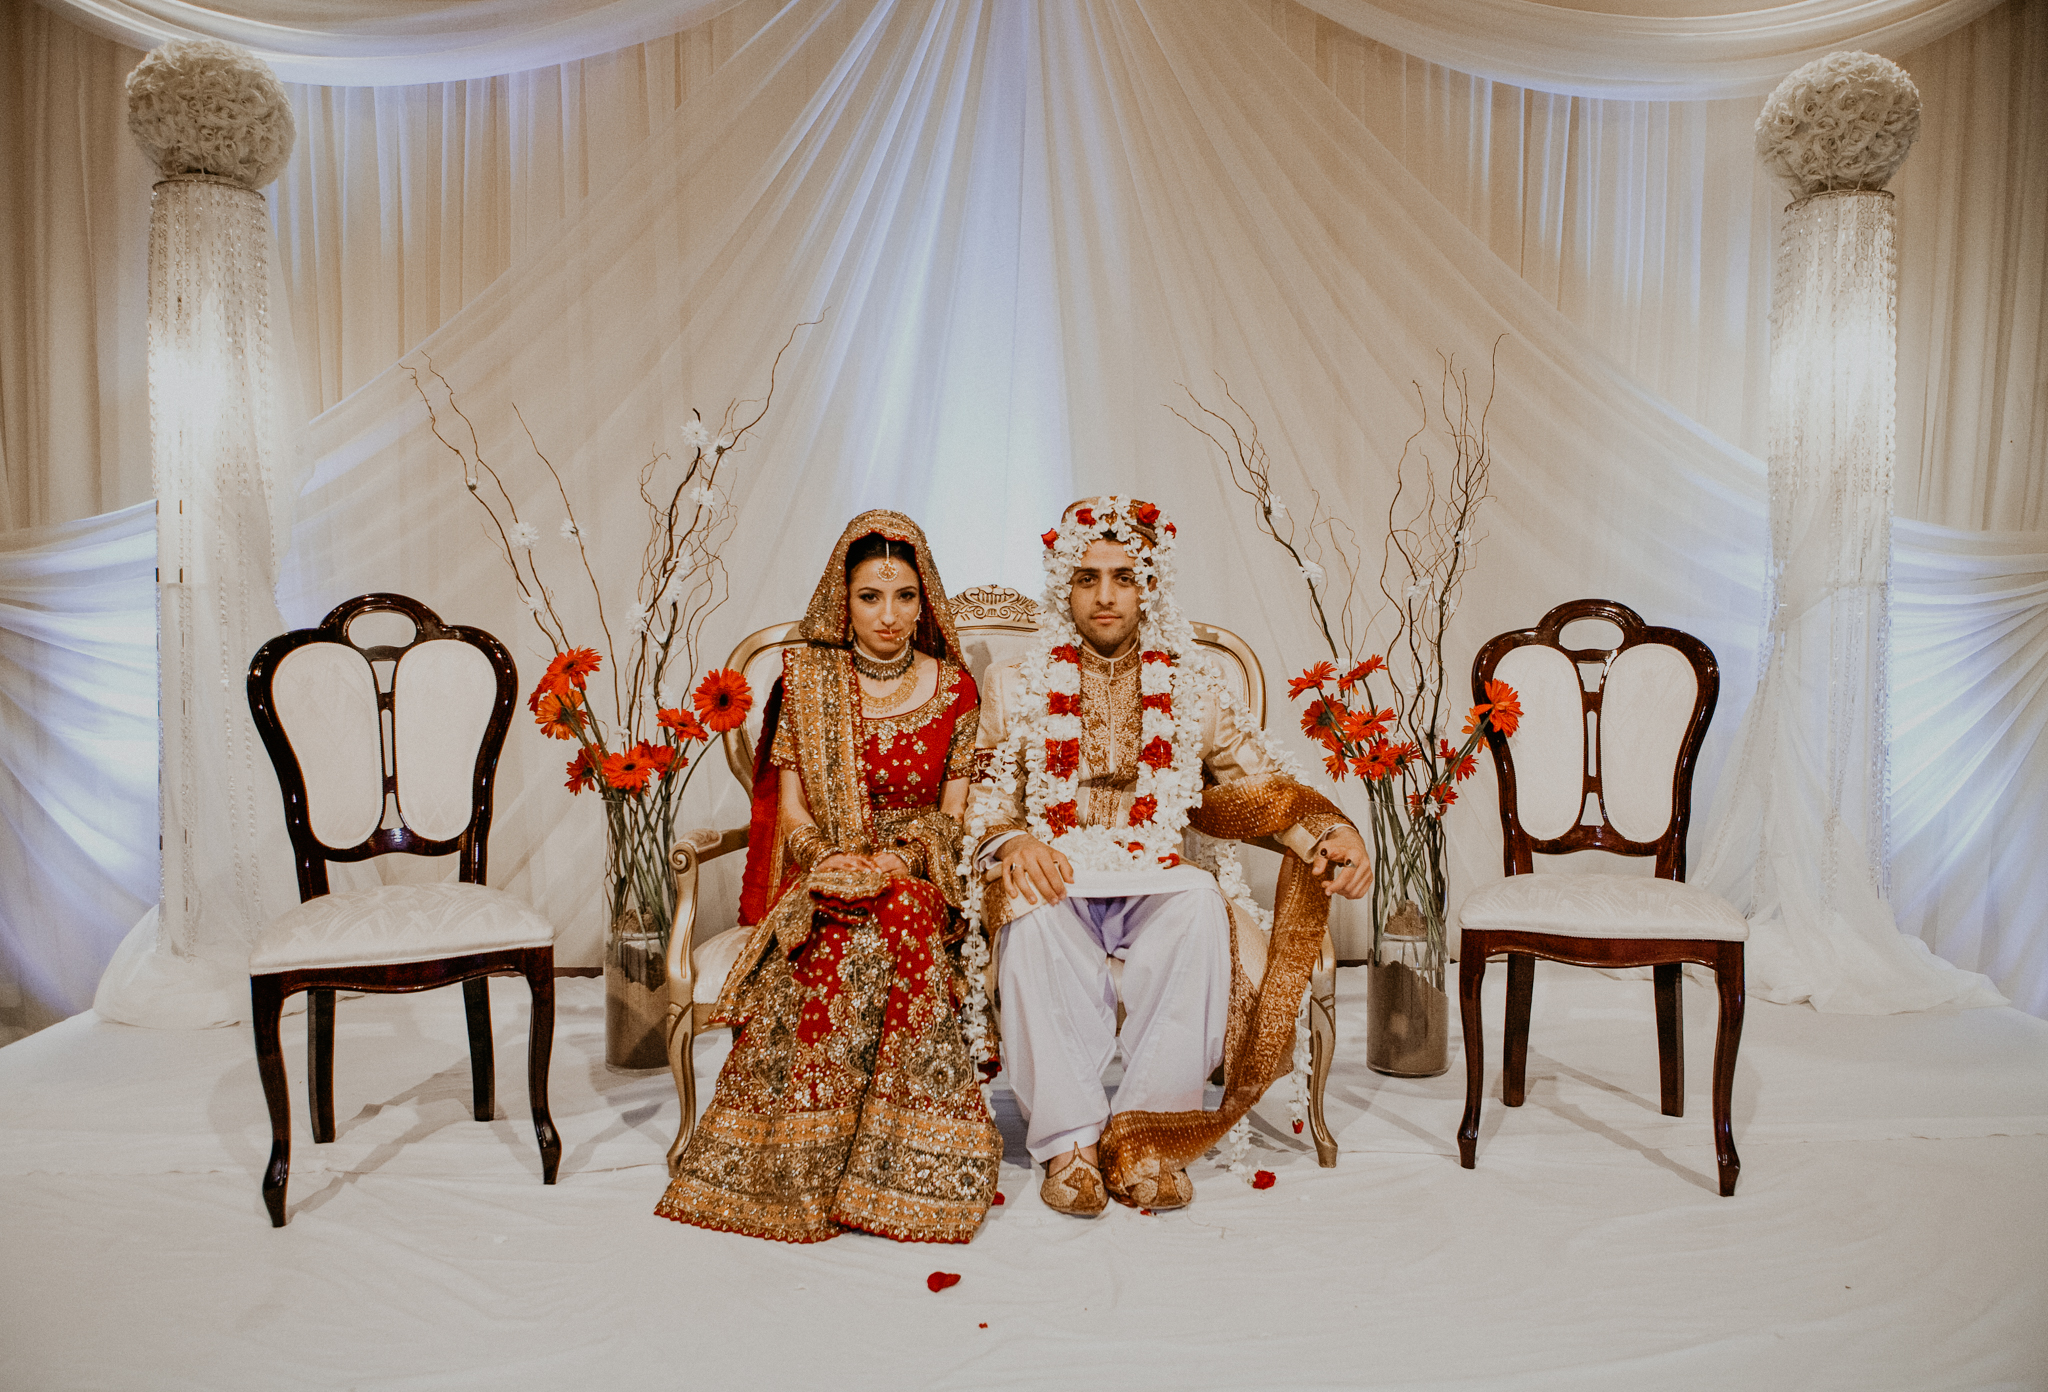 Portrait of bride and groom at Indian wedding ceremony